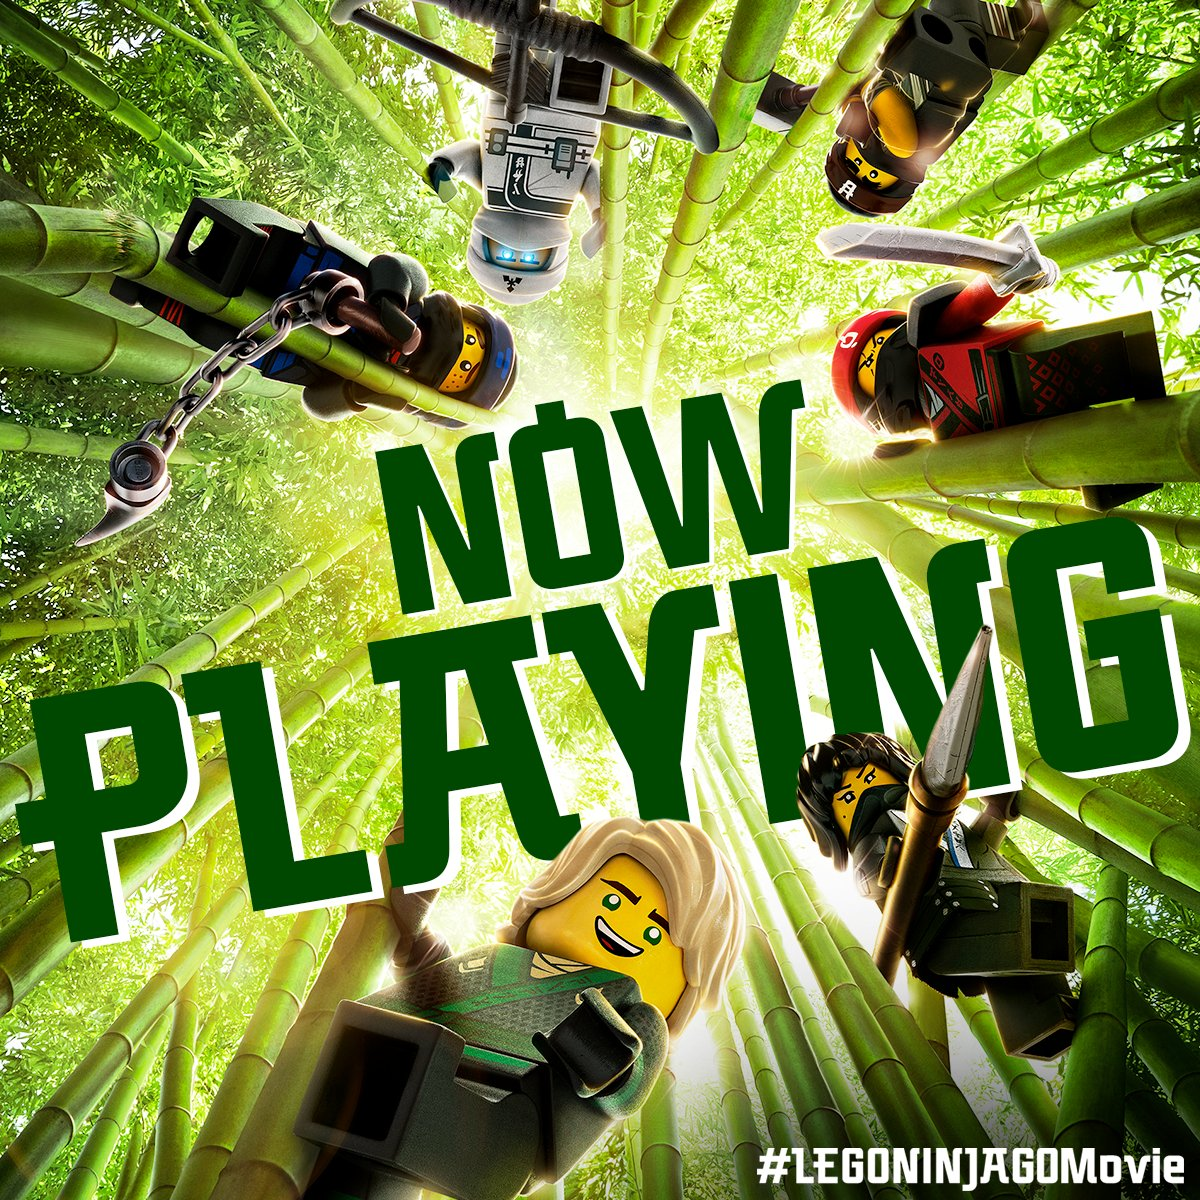 RT @NINJAGOmovie: #LEGONINJAGOMovie is NOW PLAYING! Gather your Wu Cru and see it in theaters this weekend! https://t.co/ztfzagj8Bm